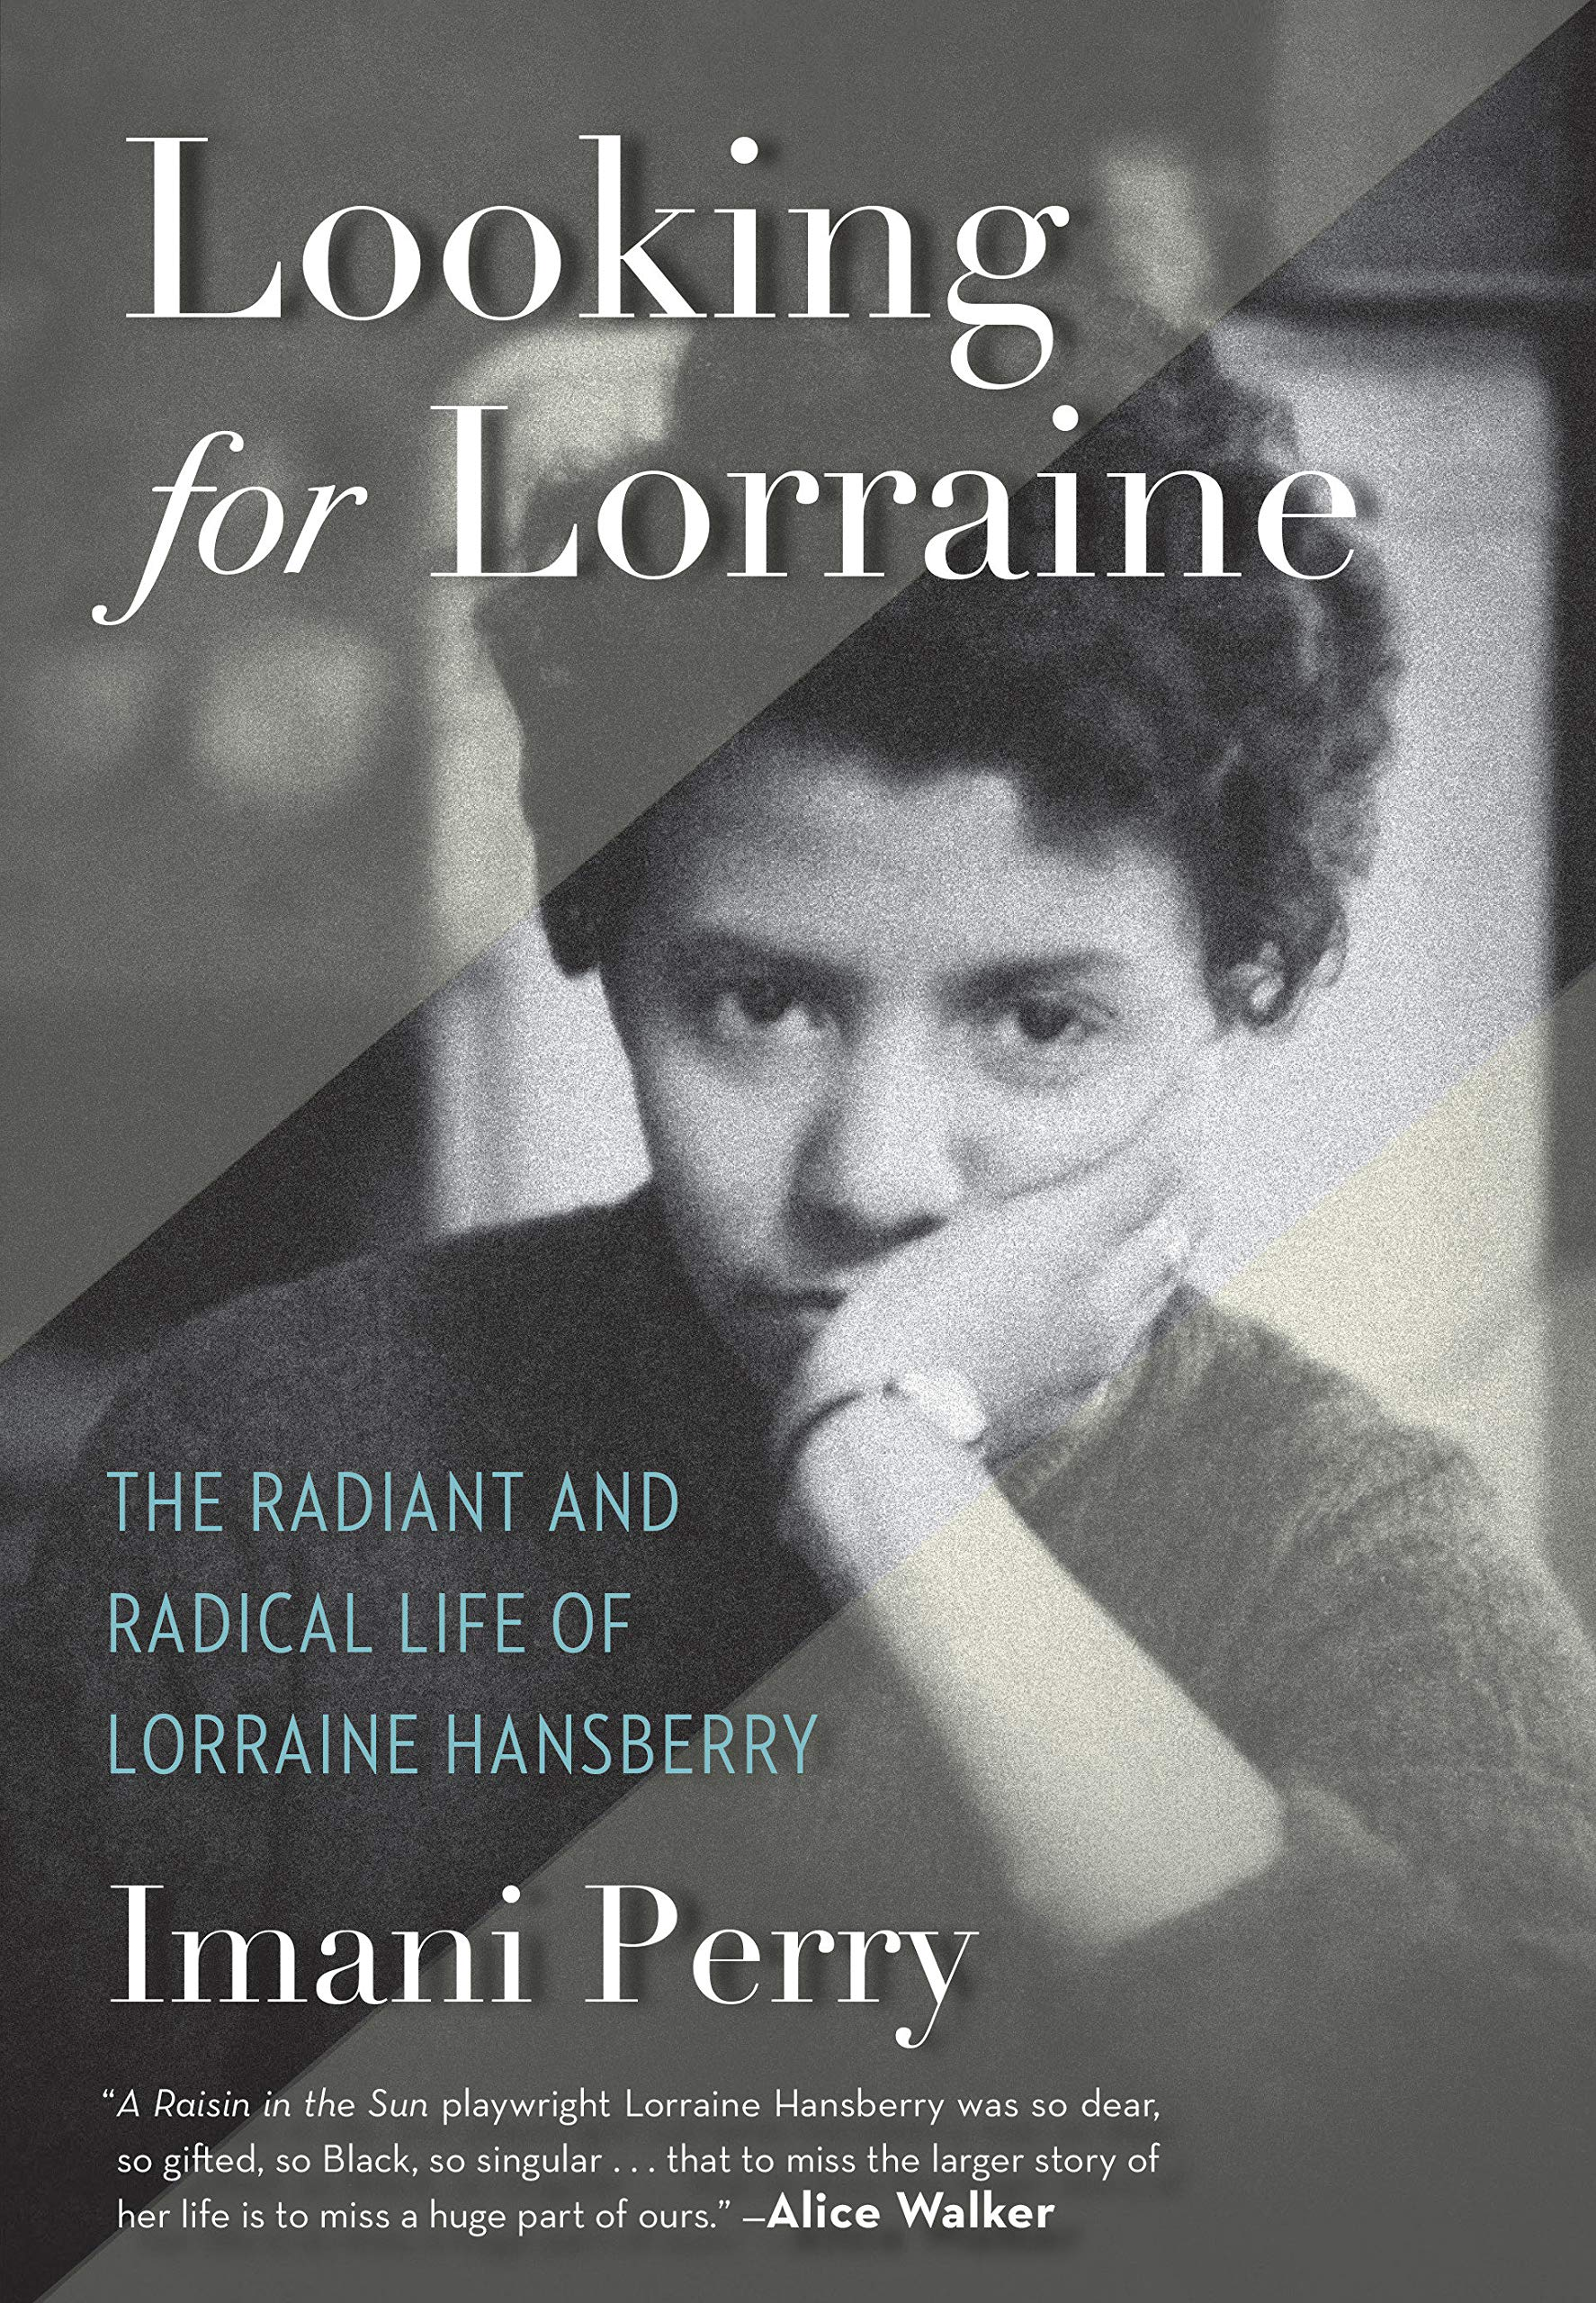 Cover of 'Looking for Lorraine: The Radient and Radical Life of Lorraine Hansberry' by Imani Perry